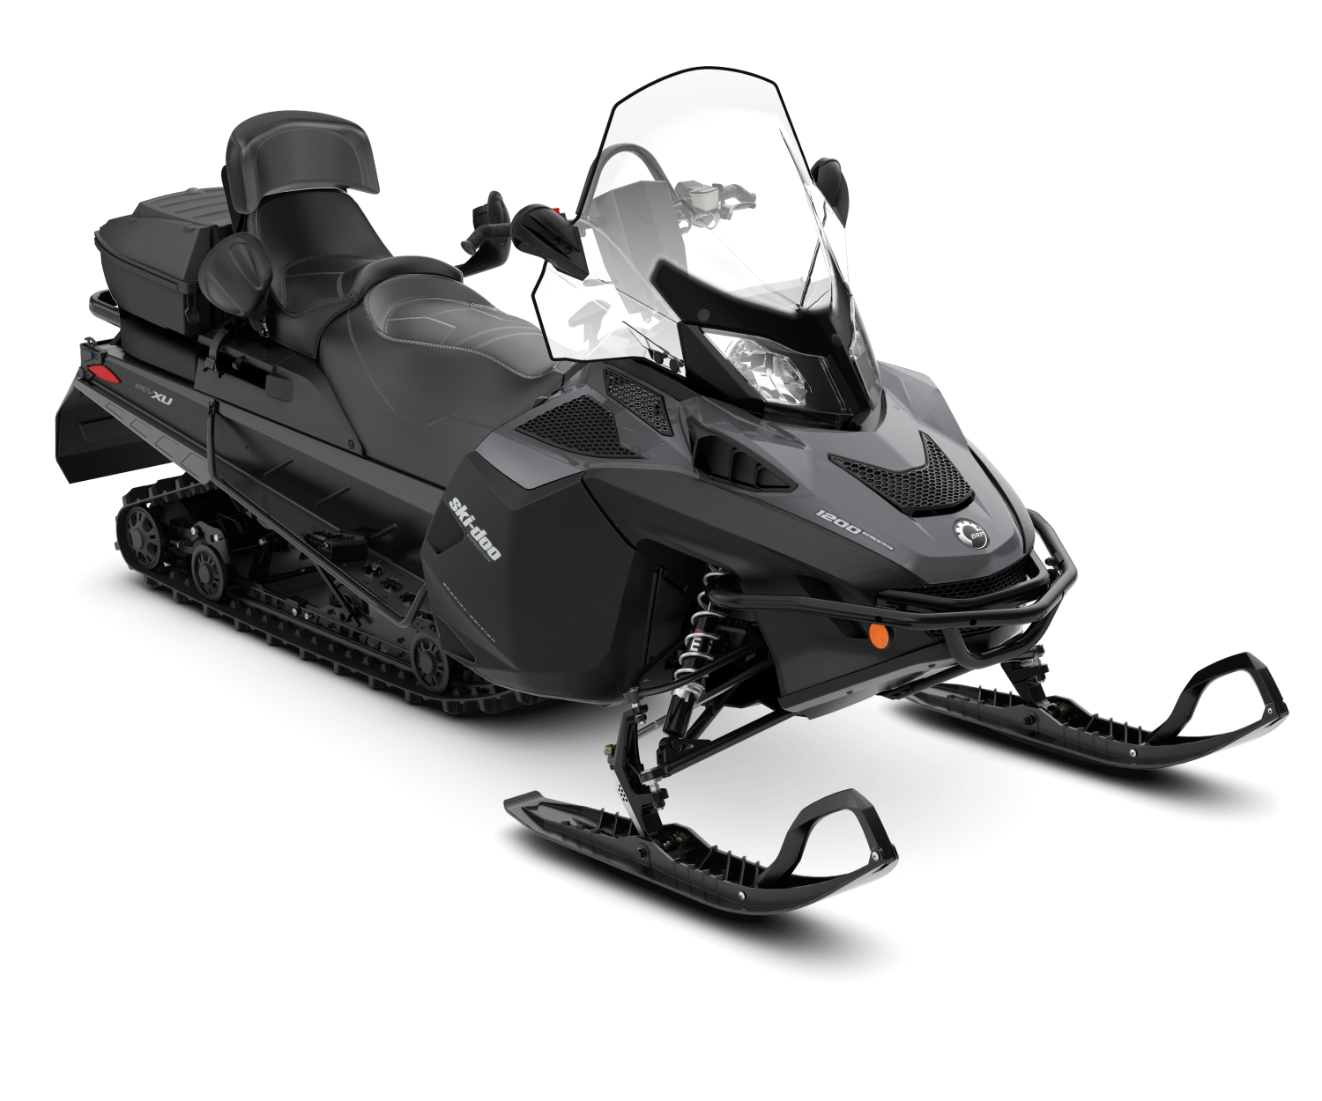 2018 Ski-Doo Expedition SE 1200 4-TEC in Omaha, Nebraska